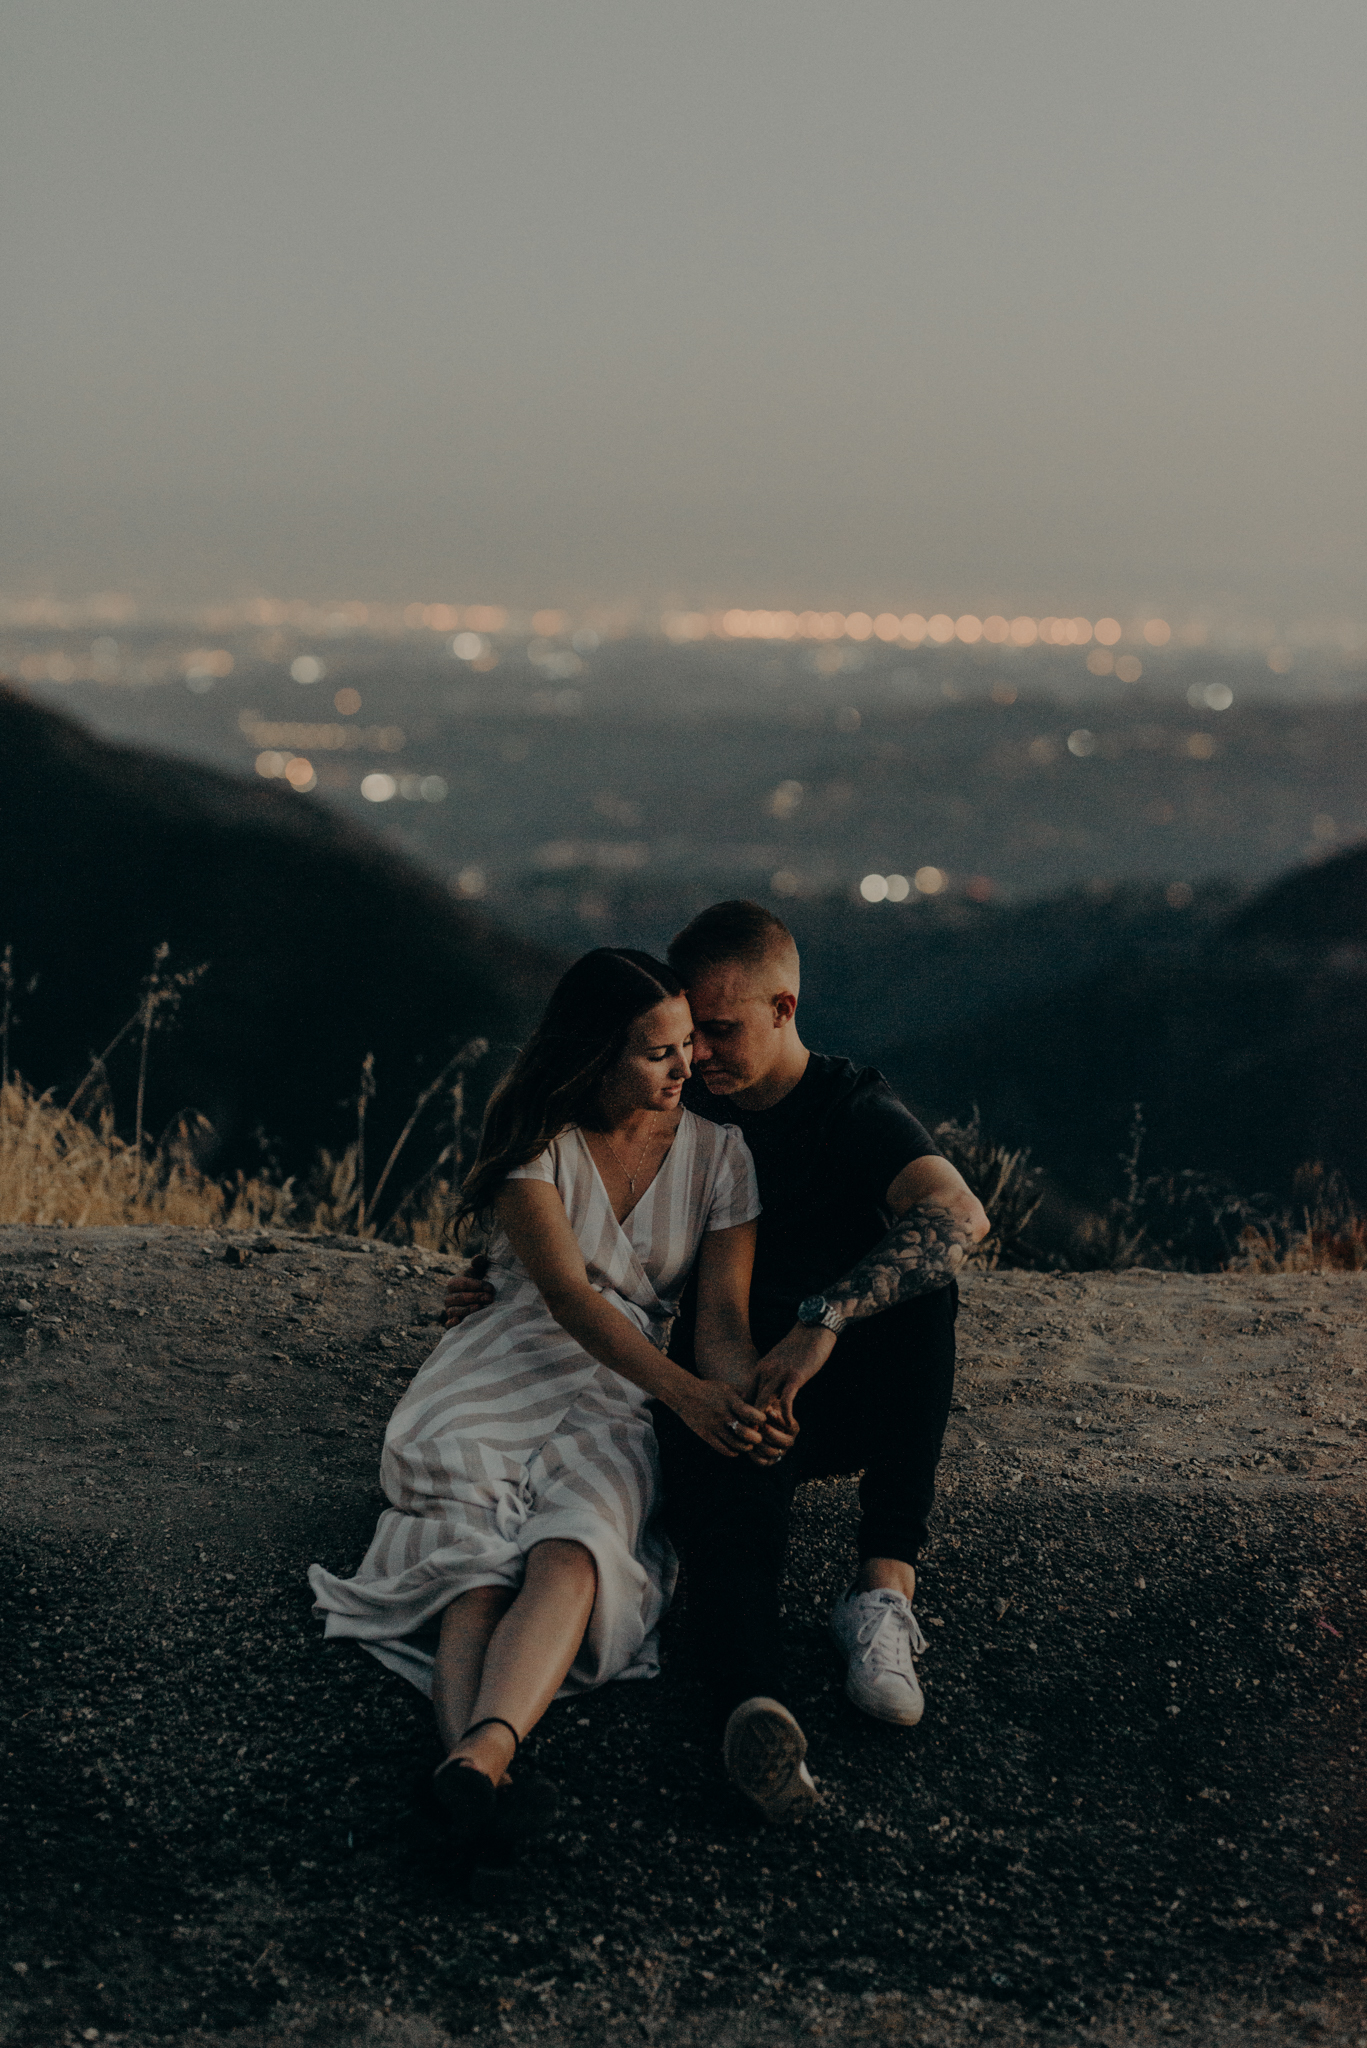 Isaiah + Taylor Photography - Los Angeles Forest Engagement Session - Laid back wedding photographer-051.jpg